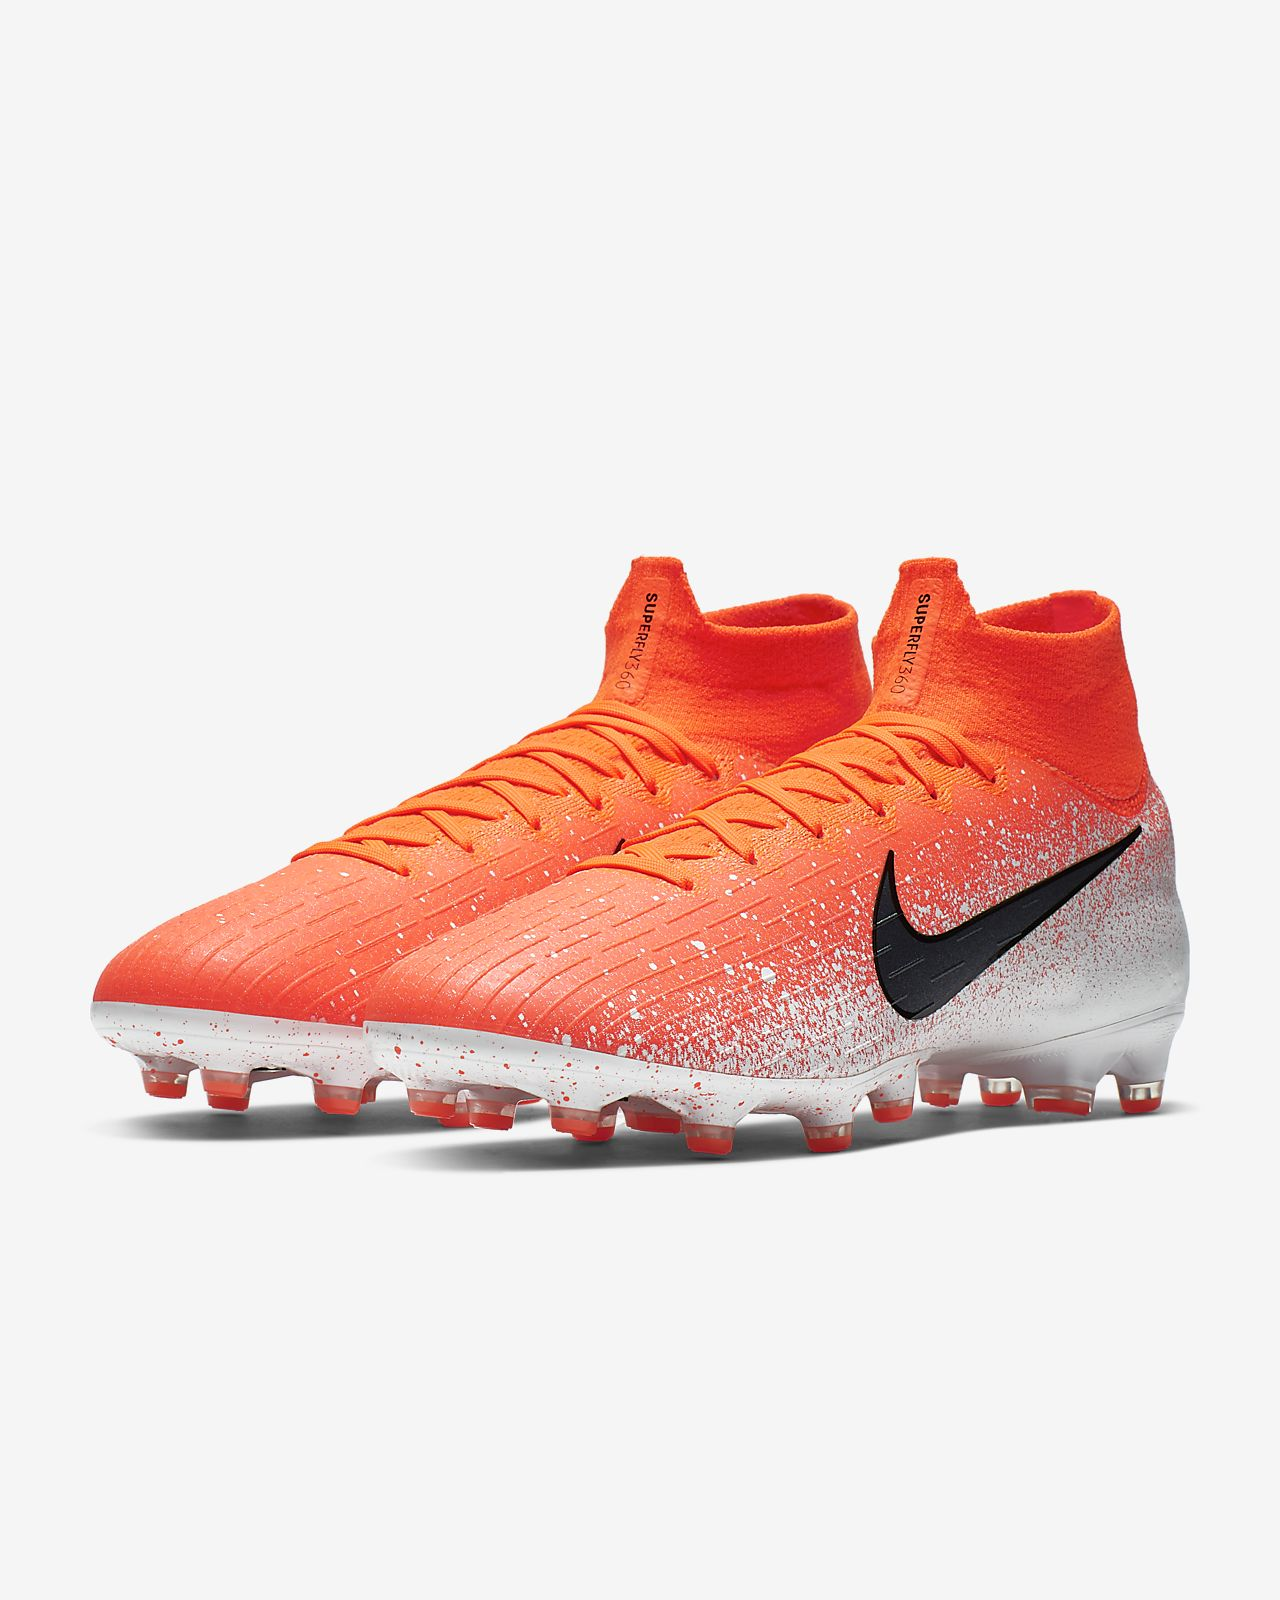 6b1377d21f1 ... Nike Mercurial Superfly 360 Elite AG-PRO Artificial-Grass Football Boot